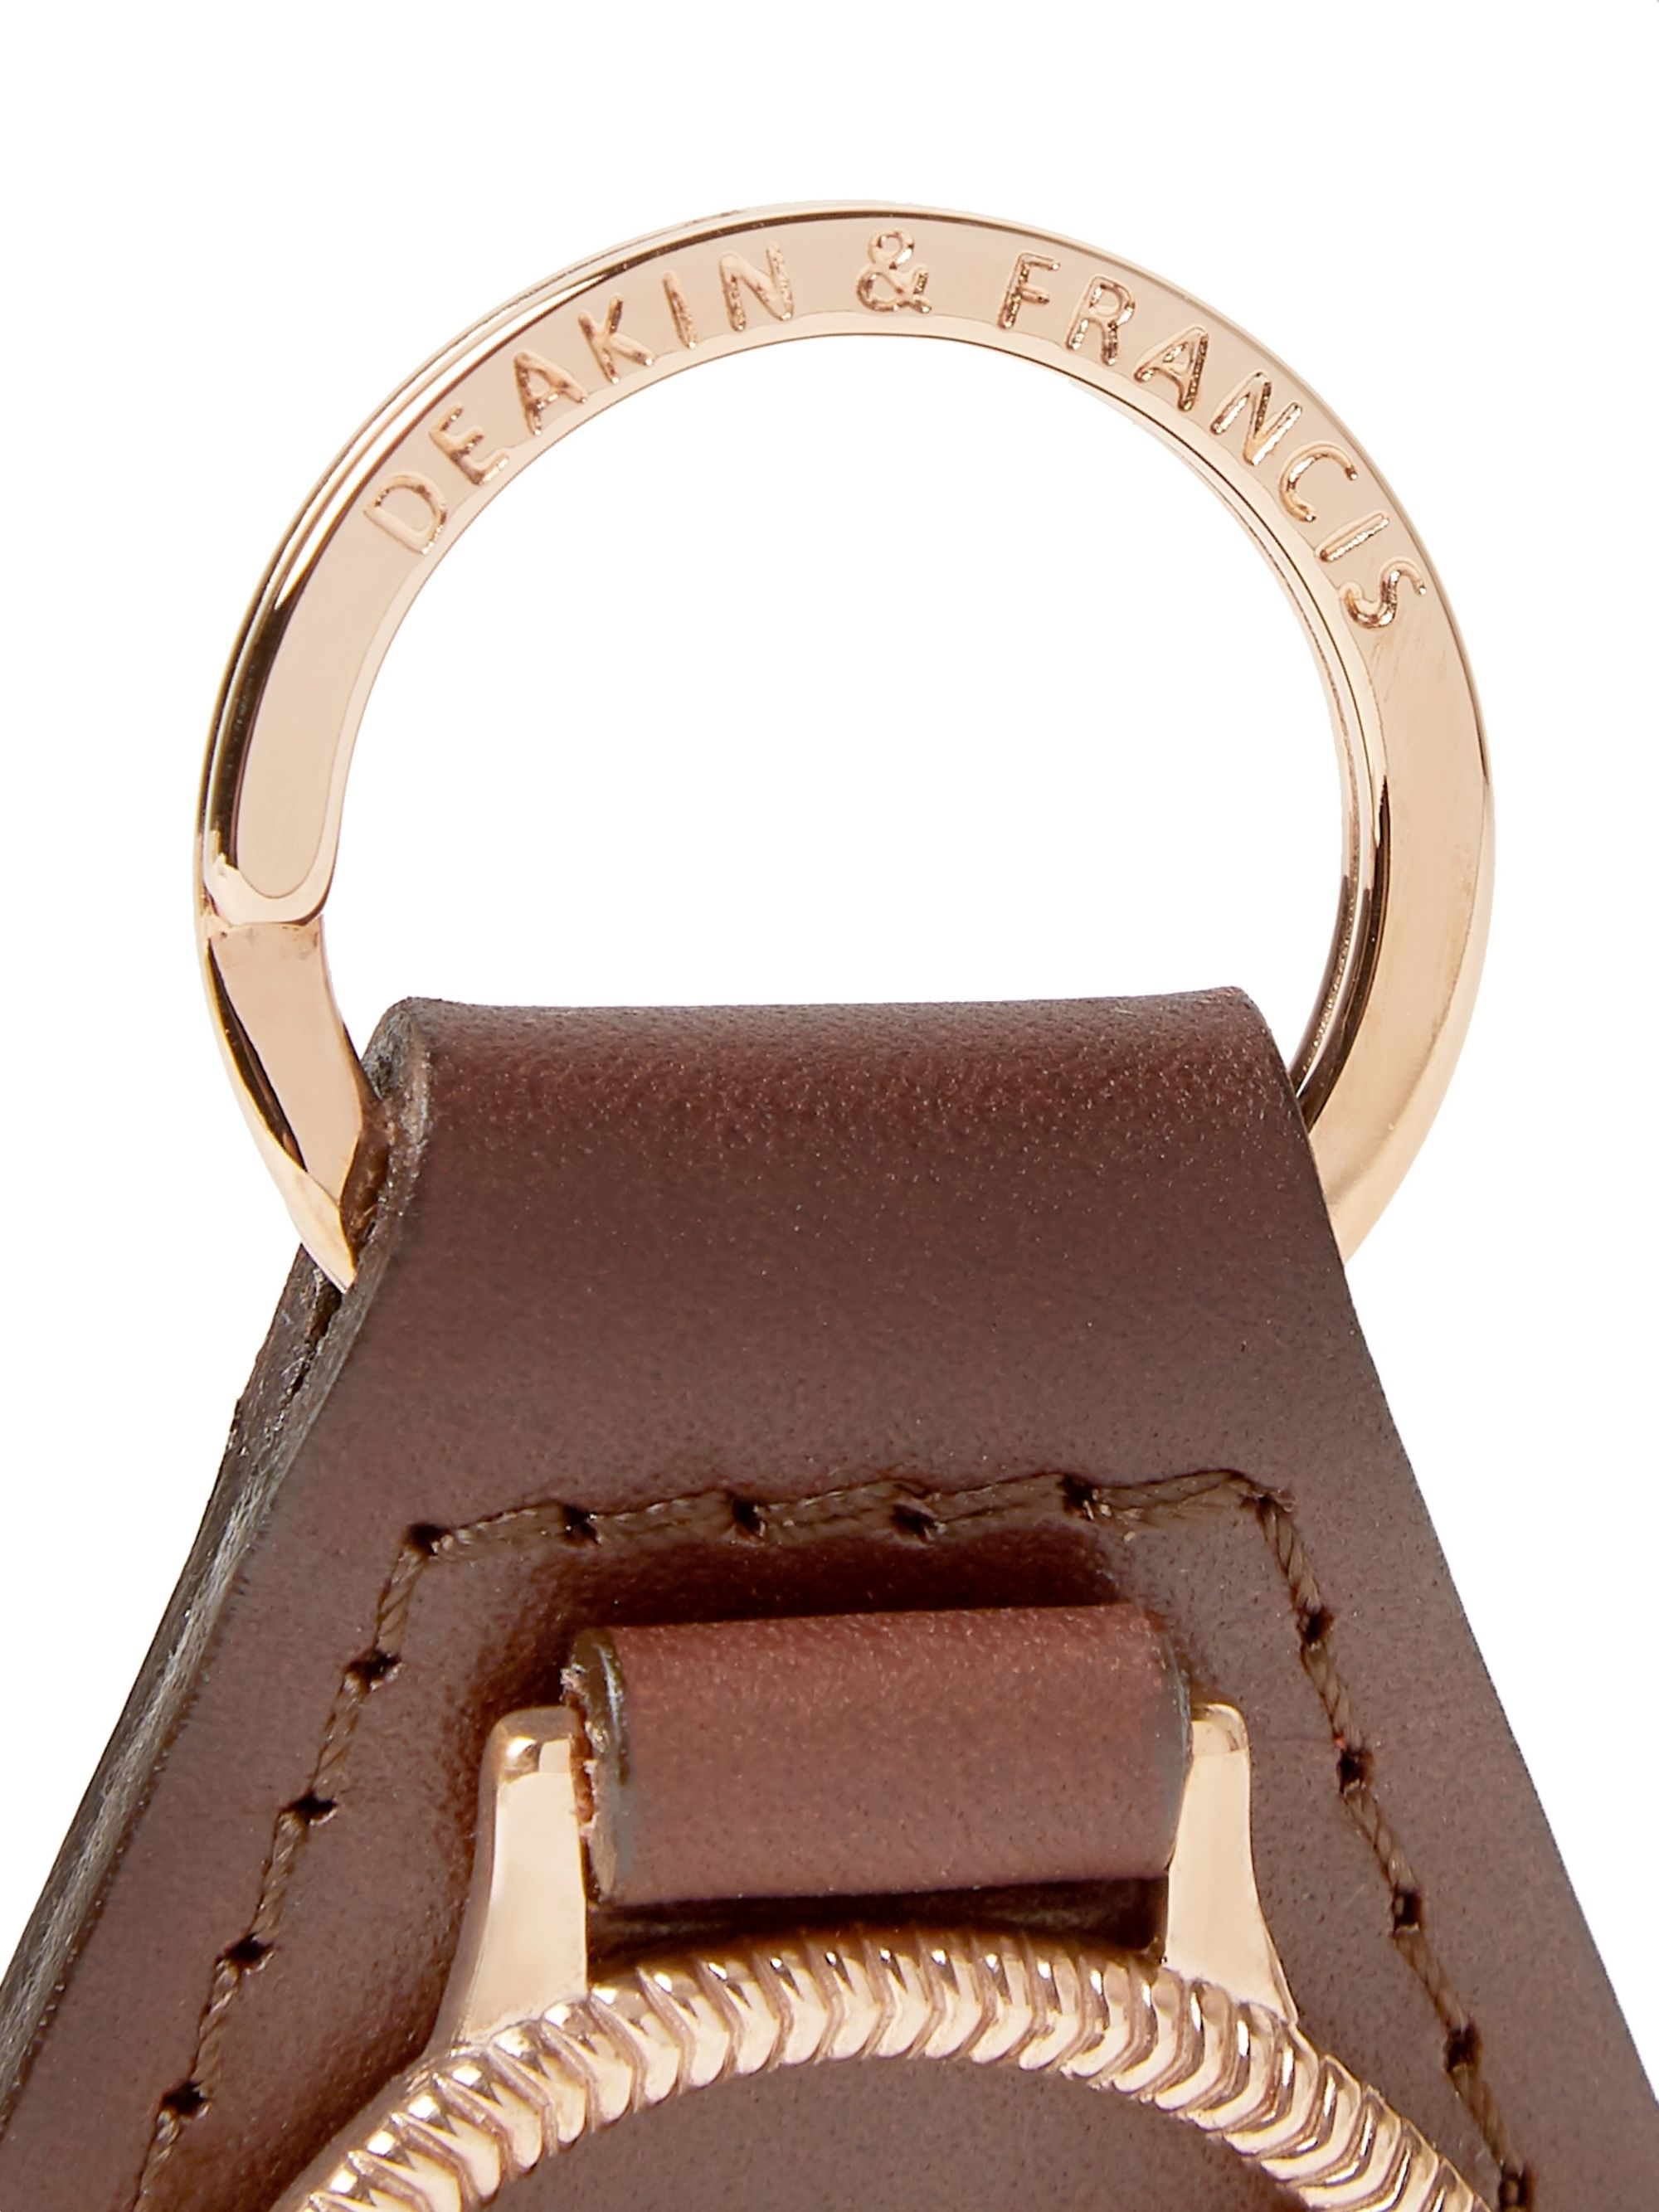 Kingsman + Deakin & Francis Leather and Rose Gold-Plated Key Fob